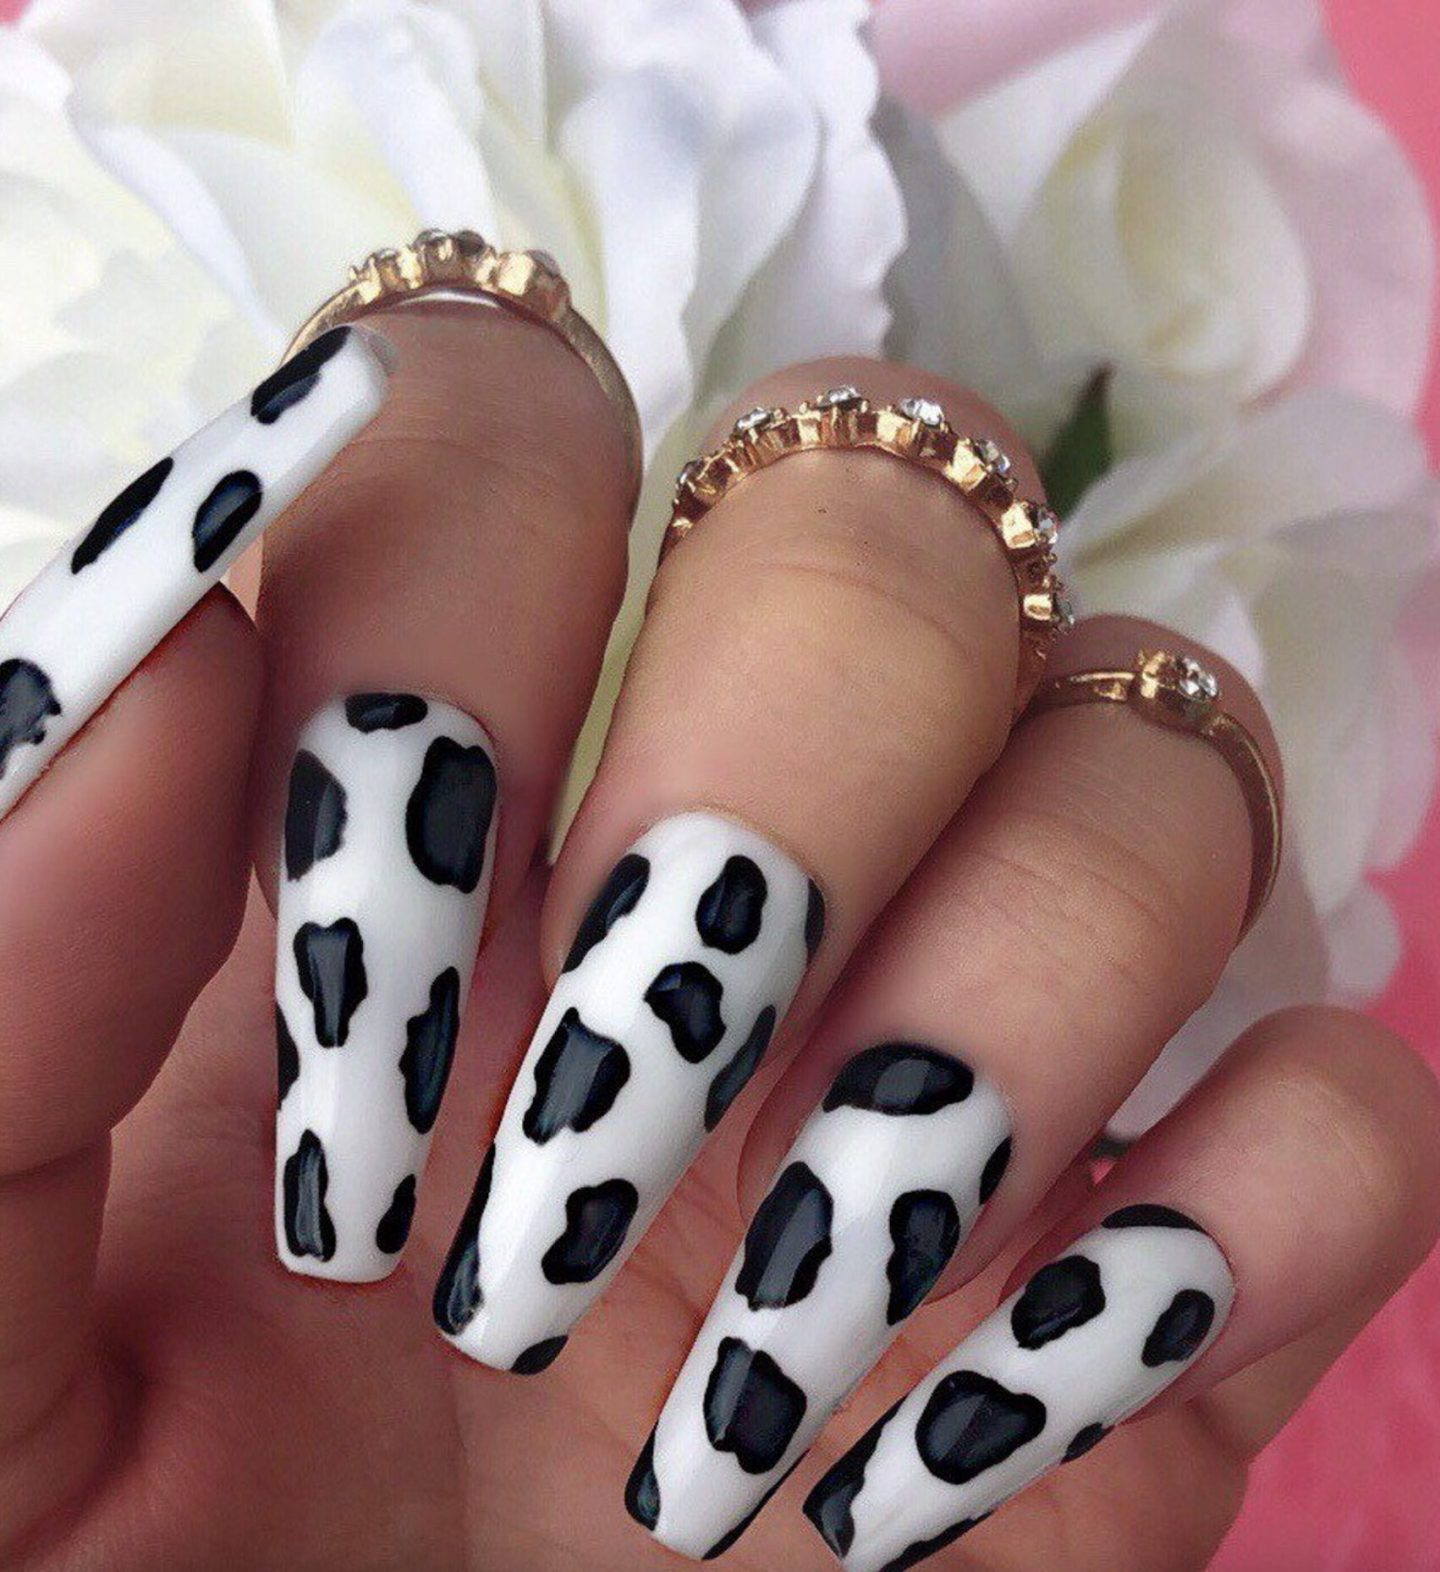 Cute black and white cow nails in acrylic coffin shape